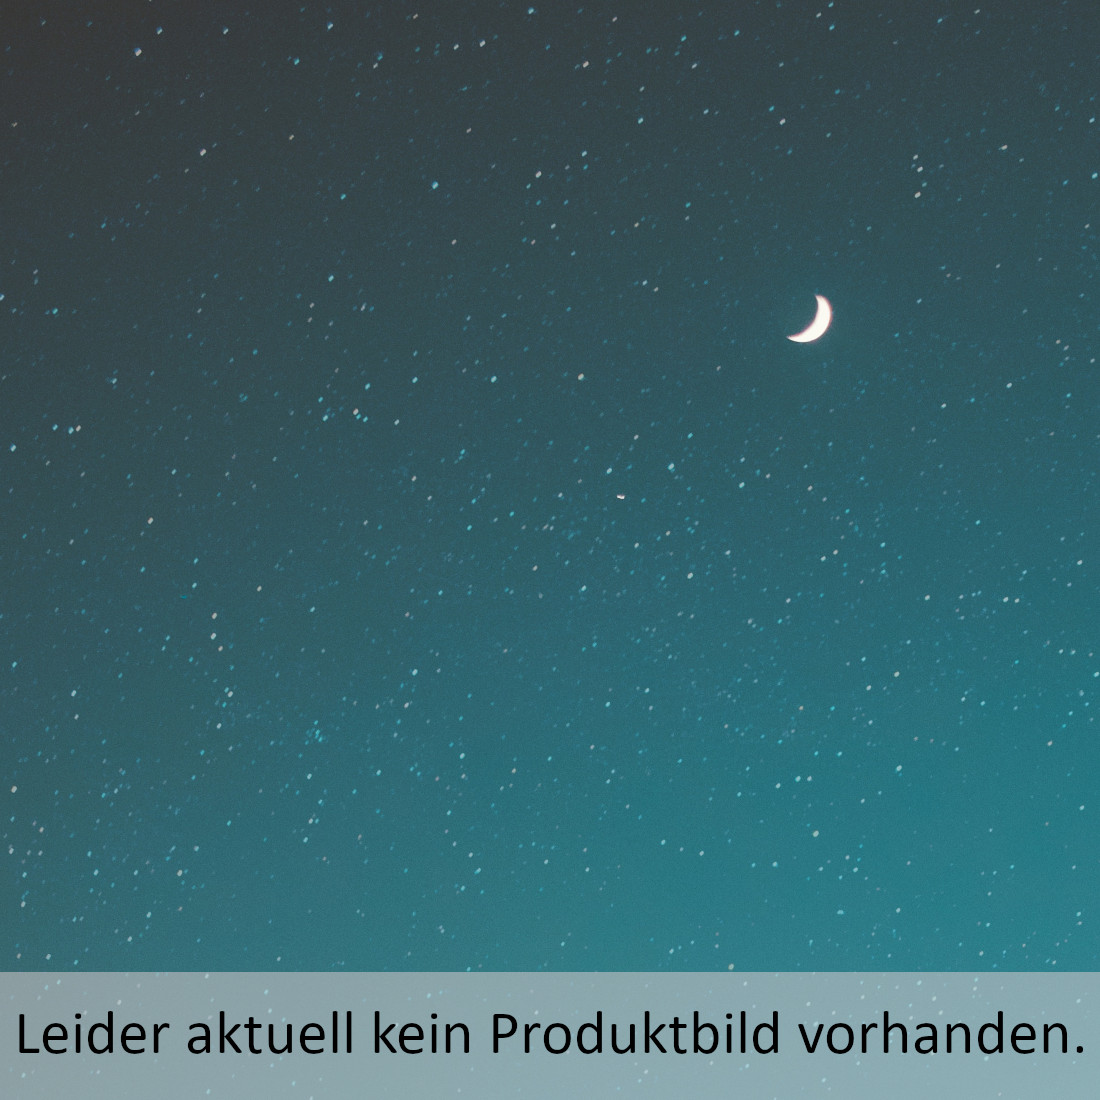 kennst du martin luther.jpg